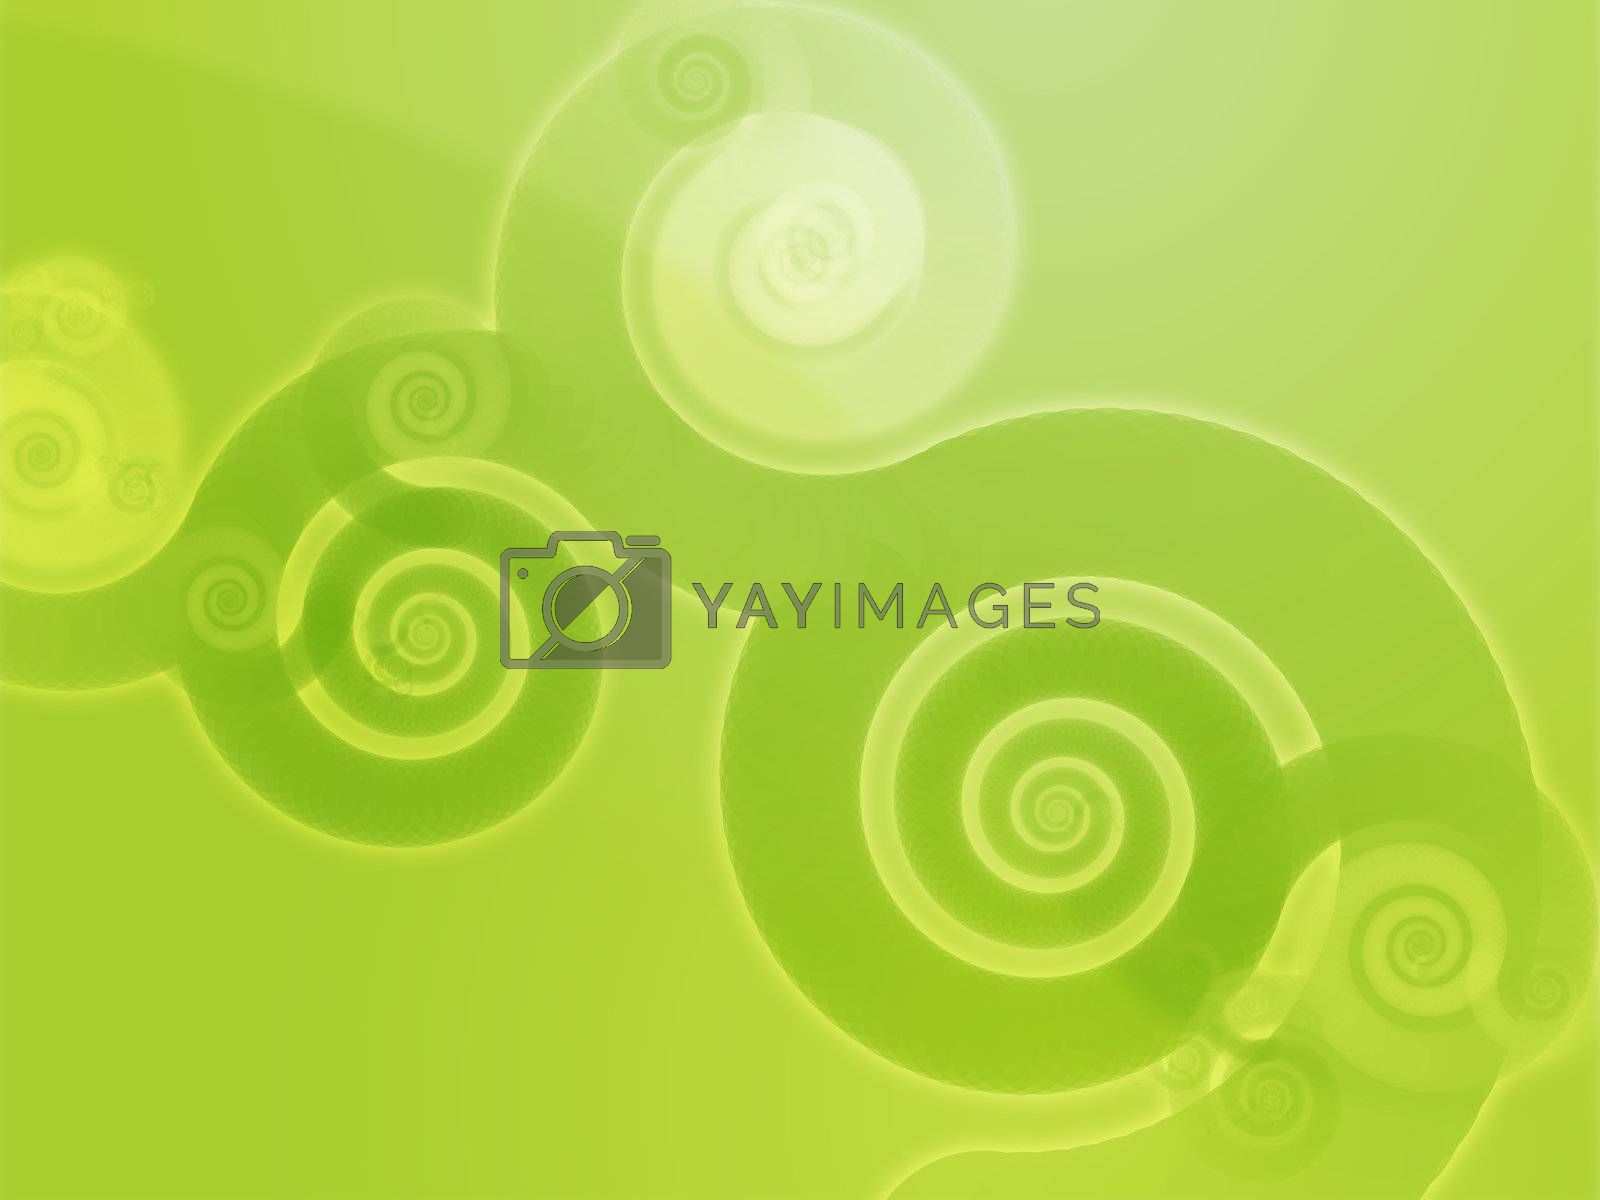 Abstract swirly floral grunge illustration by kgtoh